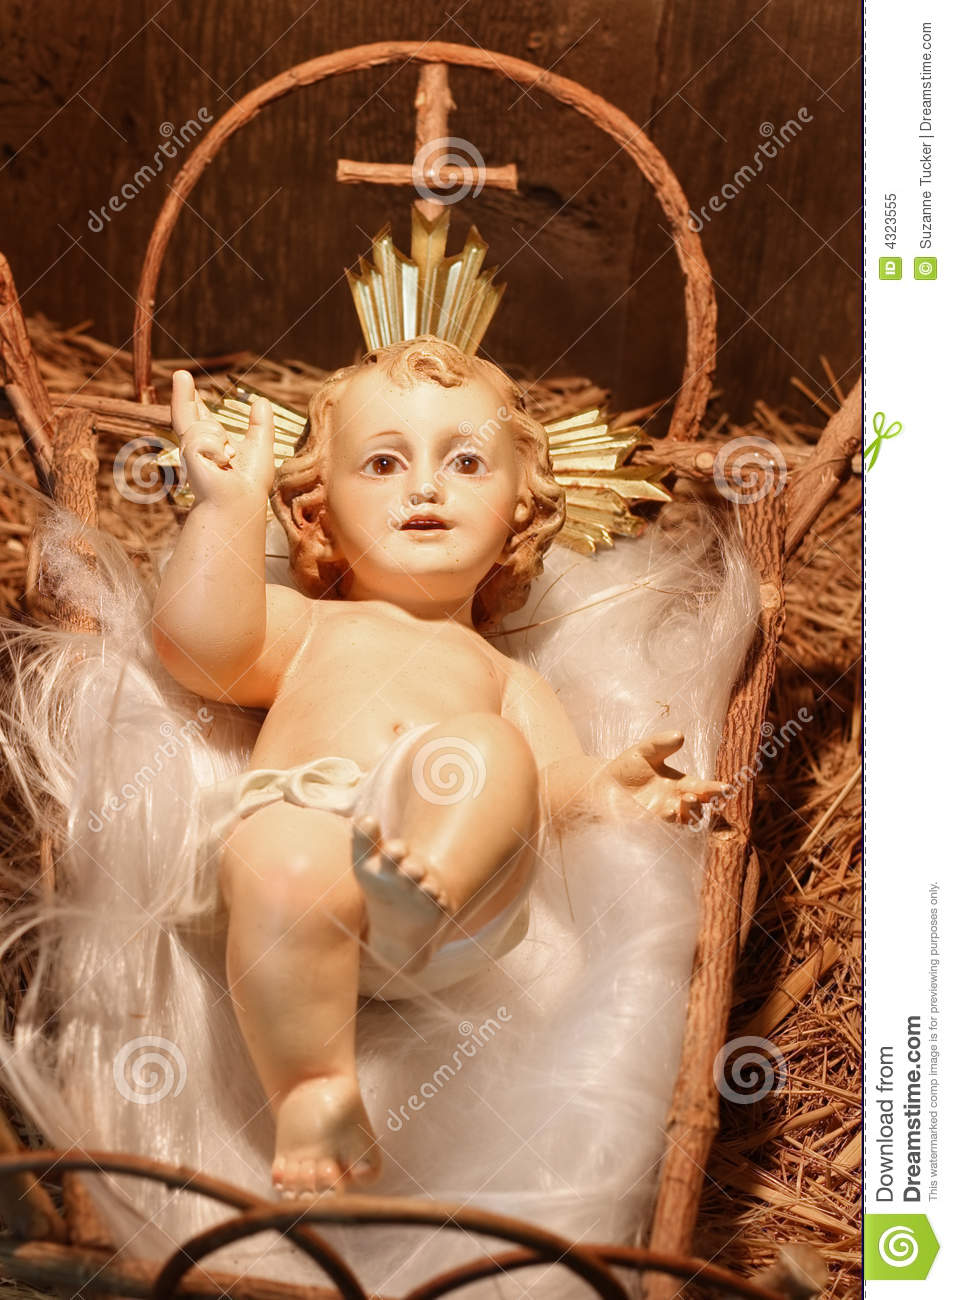 ... Plaster Baby Jesus in the Manger (closeup of a Nativity scene